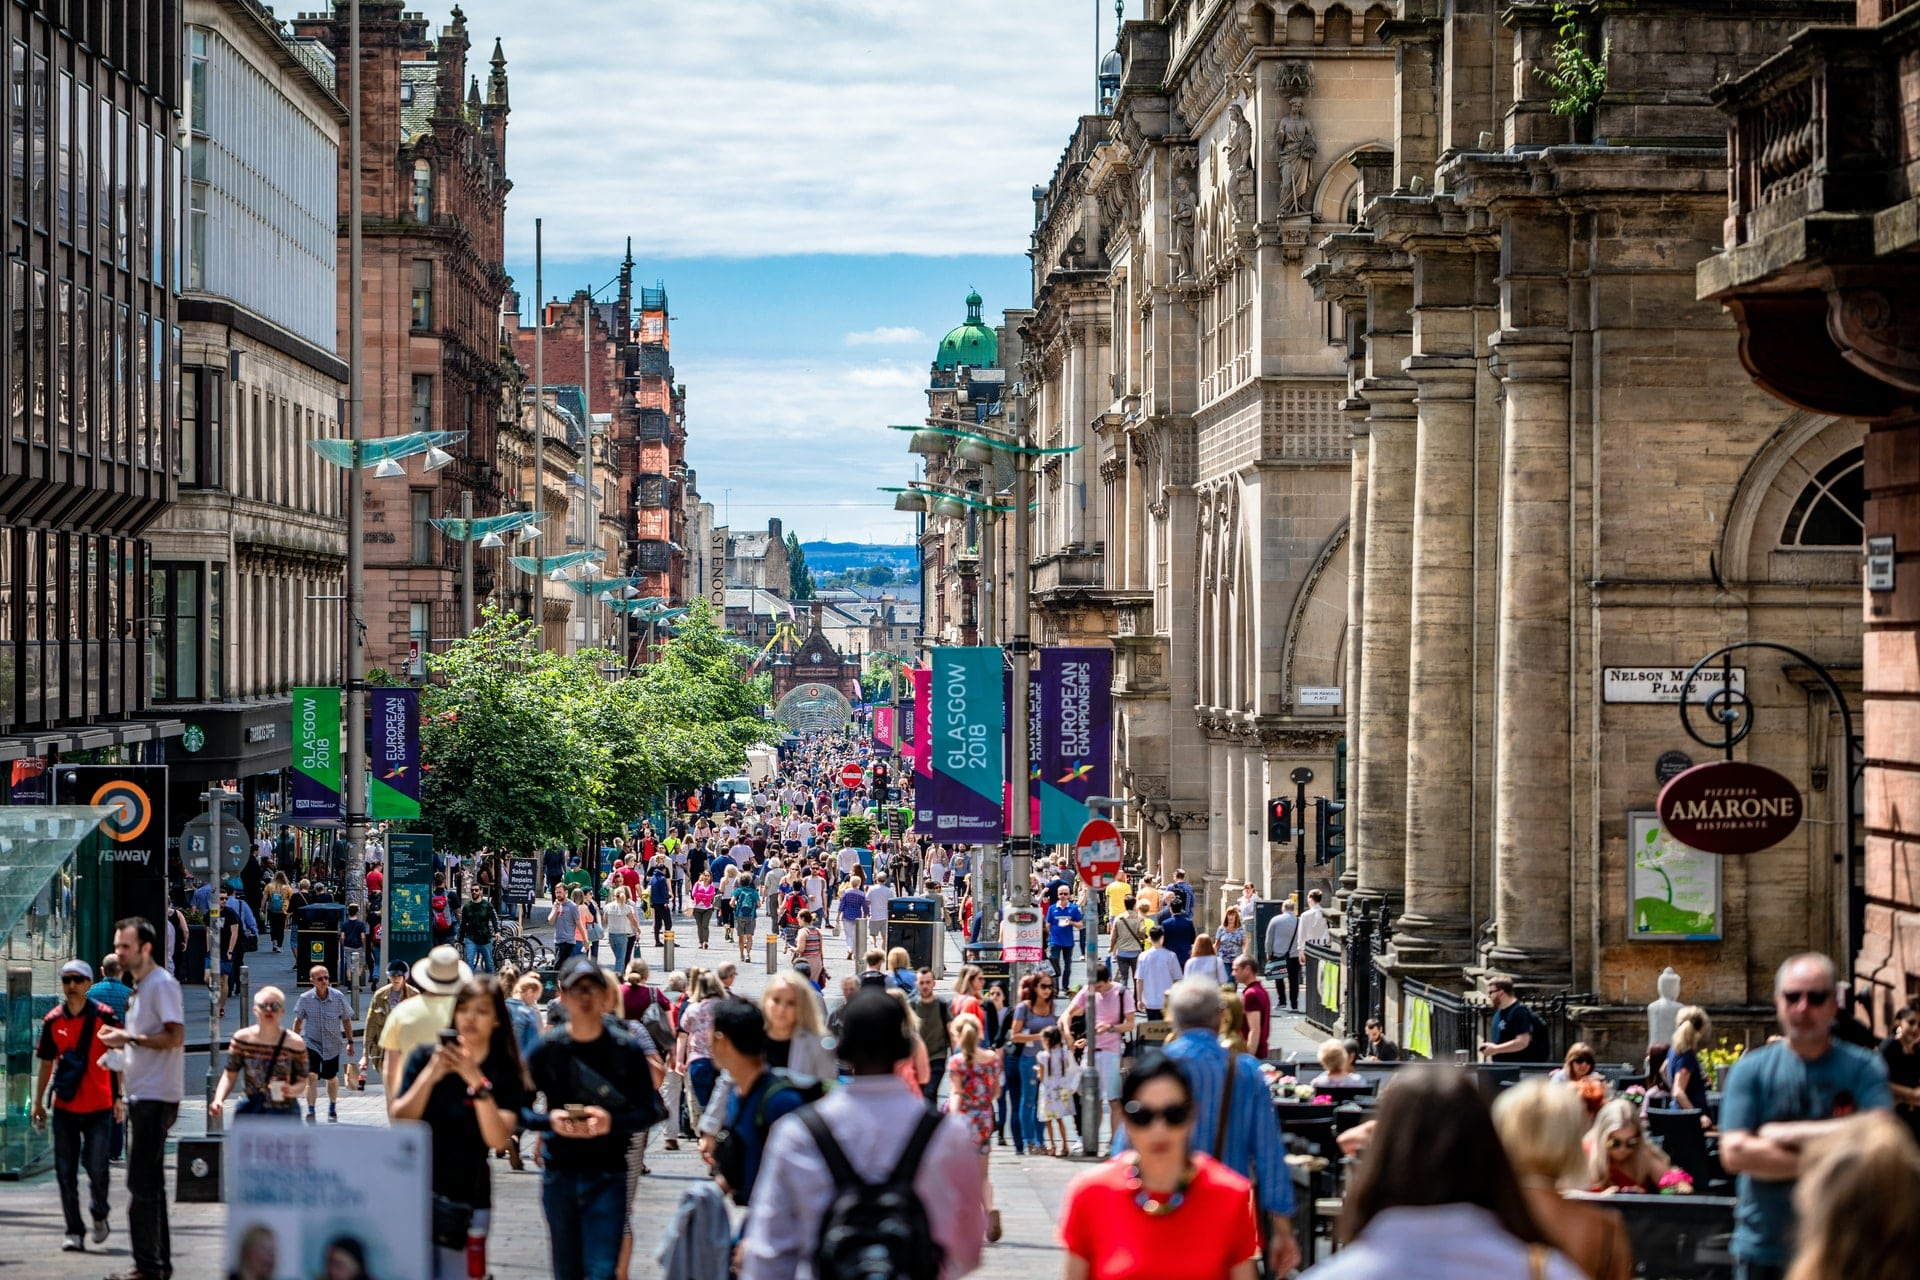 lots-of-people-walking-down-busy-city-centre-high-street-on-a-summers-day-glasgow-scotland